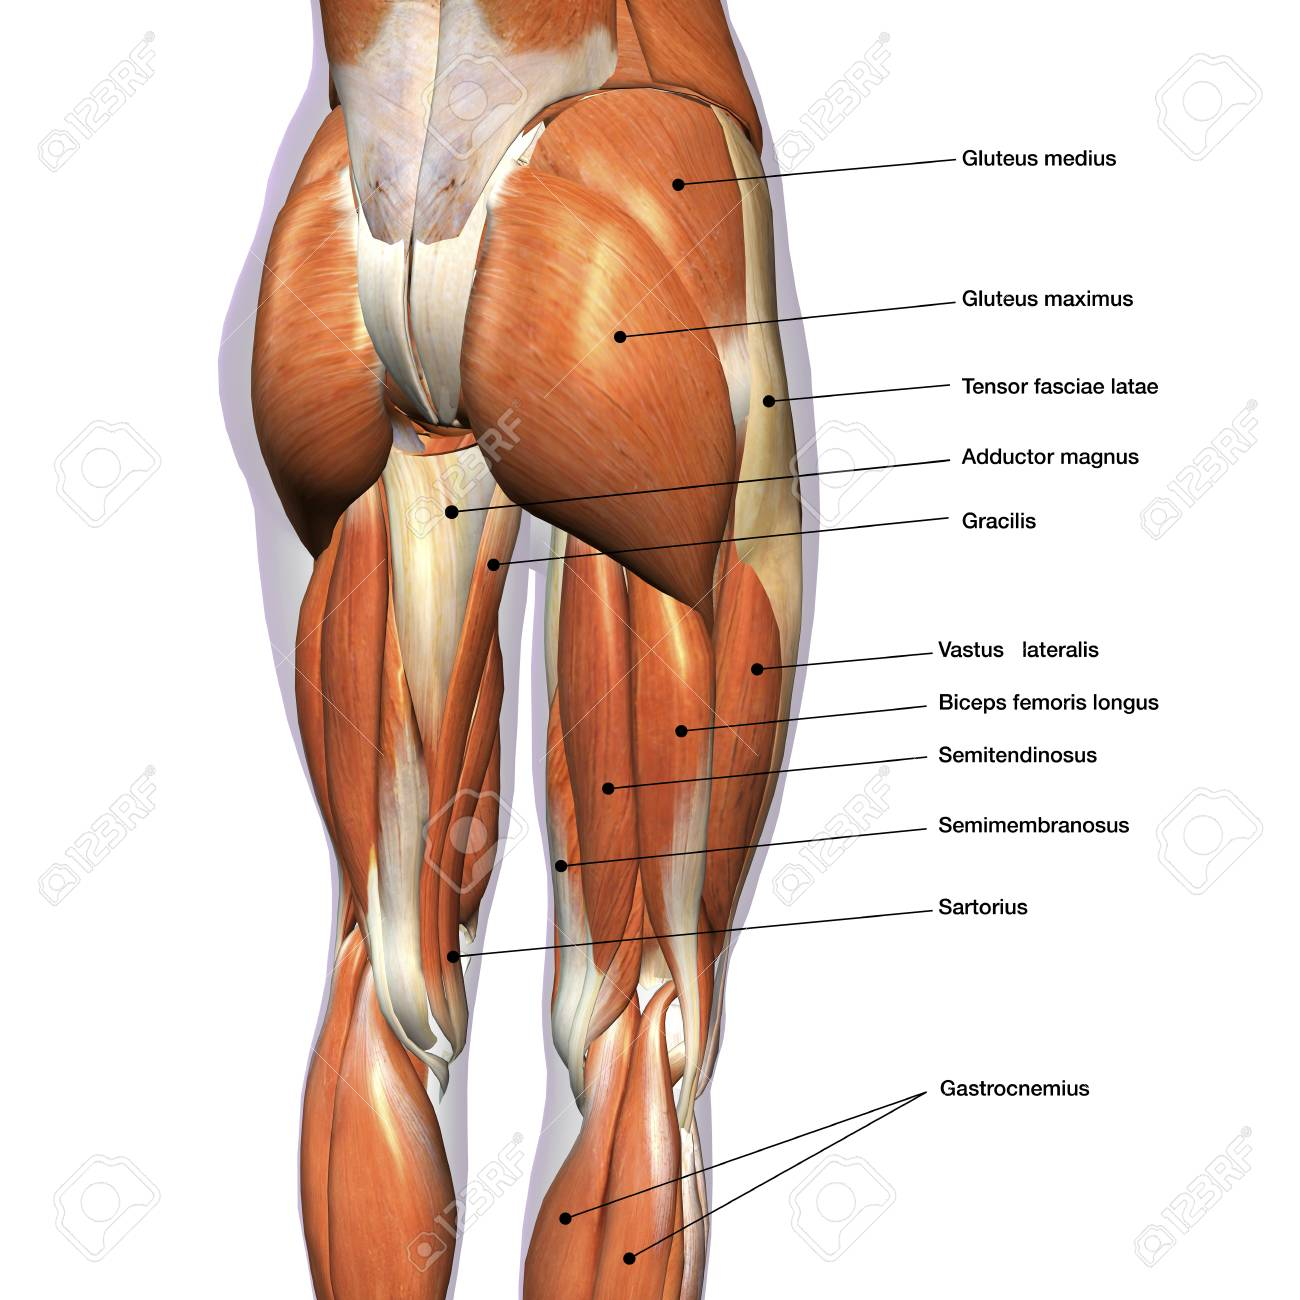 hight resolution of rear view of female hip and leg muscles with labels stock photo leg muscles diagram labeled leg muscles diagram